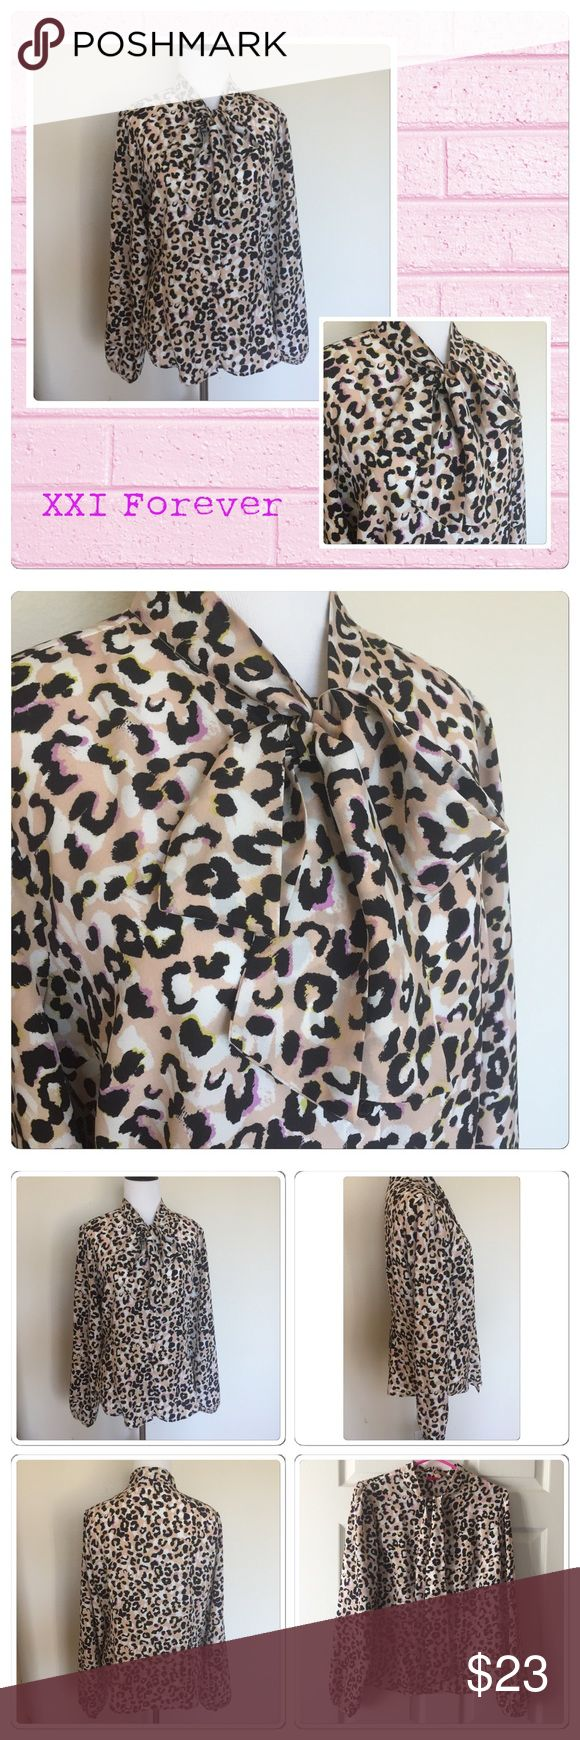 🛍Pastel Cheetah Print Blouse 🛍So pretty in pastel animal/cheetah print, in tans, black, white, and pink. Long sleeve, button up with a tie bow collar. (Ignore my bow tying skills) lol 100% polyester, loose but shaped, and wrinkle free!!  Great for work or play💗be stunning and comfy. Bought and never wore. Just been wasting away in closet. Needs a new home to get love, size Large Offers Welcome through offer button. Happy Poshing!! 🛍 Forever 21 Tops Blouses